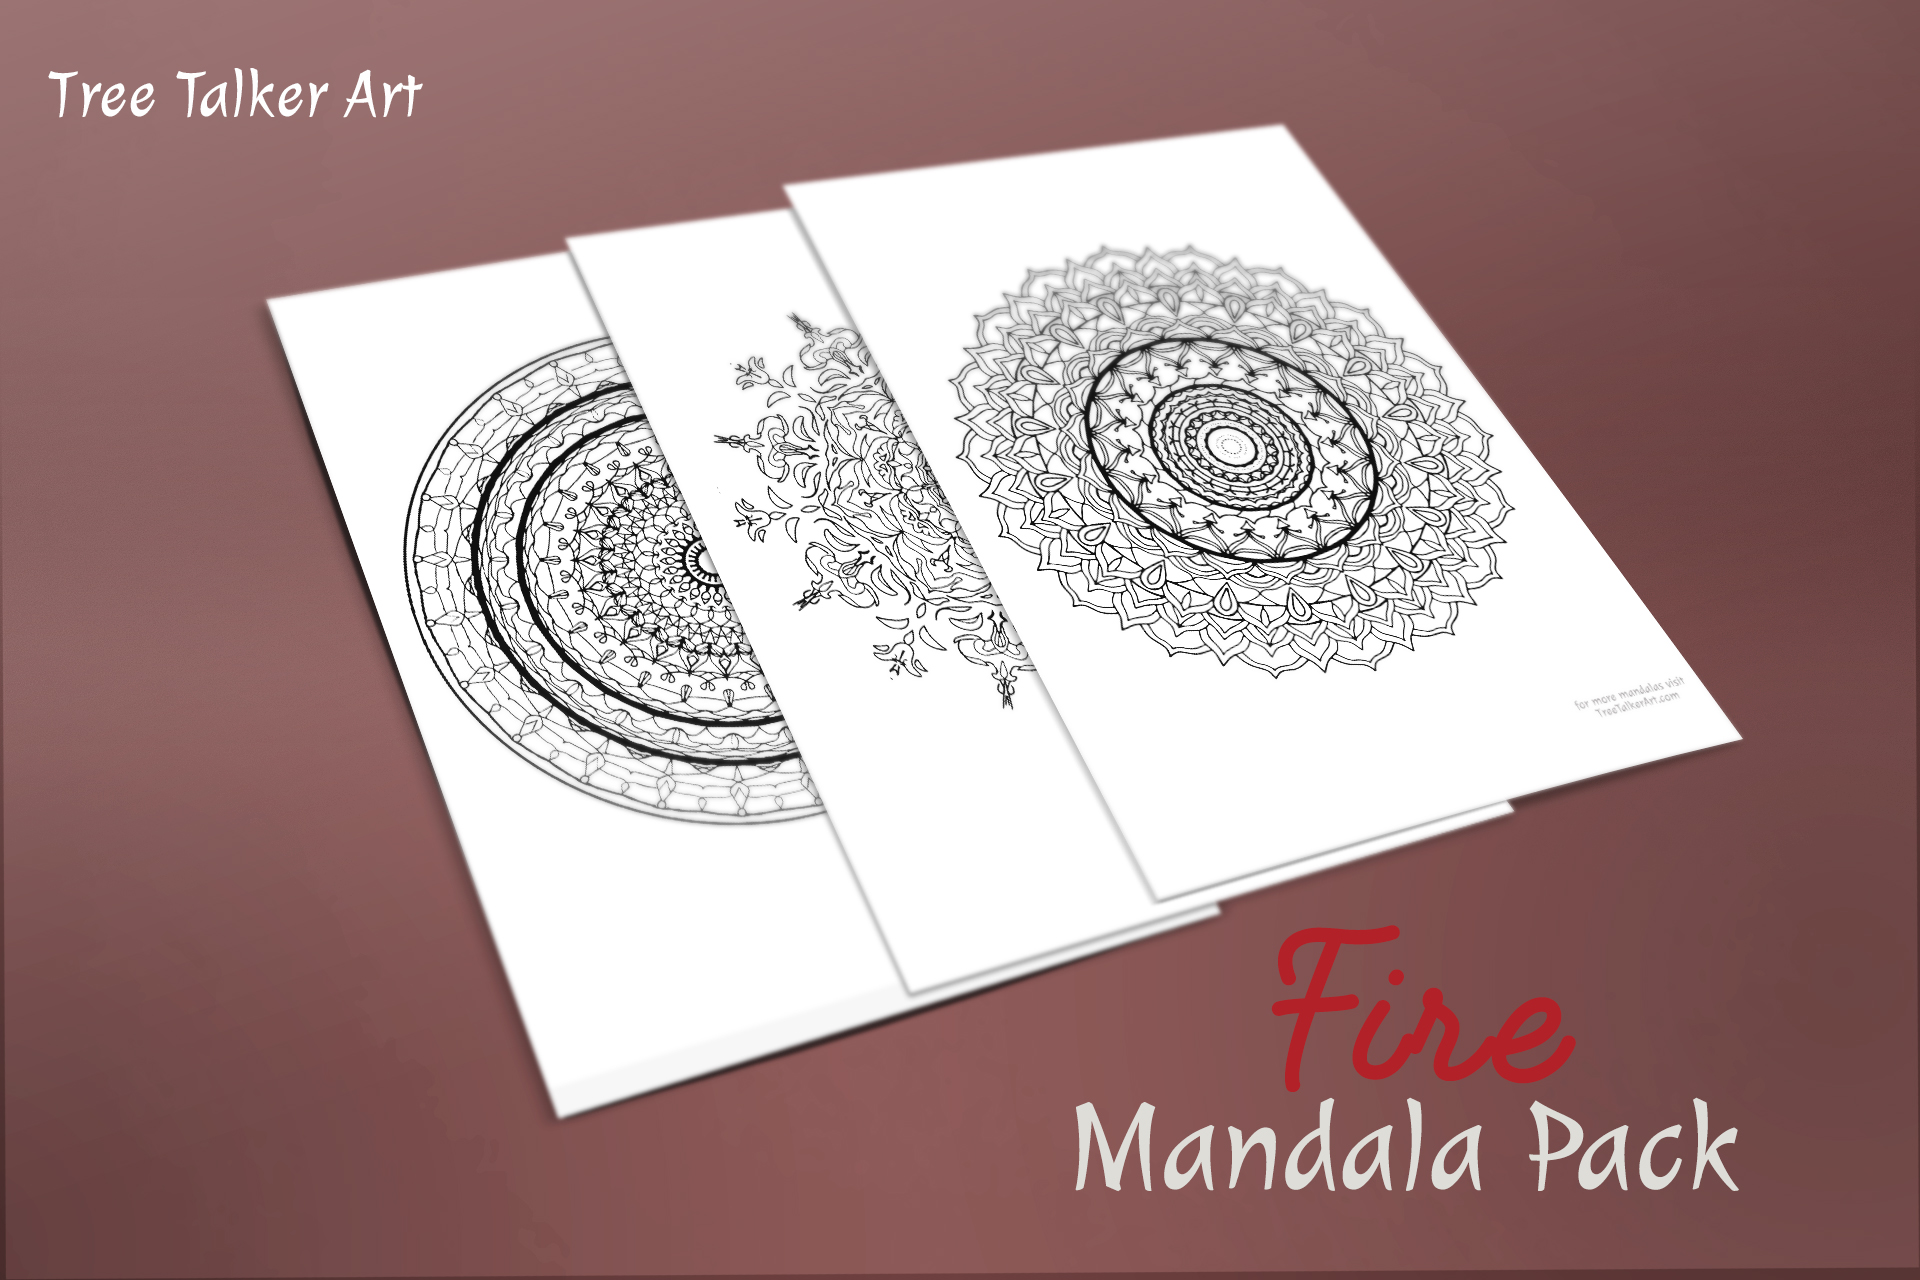 Fire Downloadable Mandala Meditation Pack | Tree Talker Art